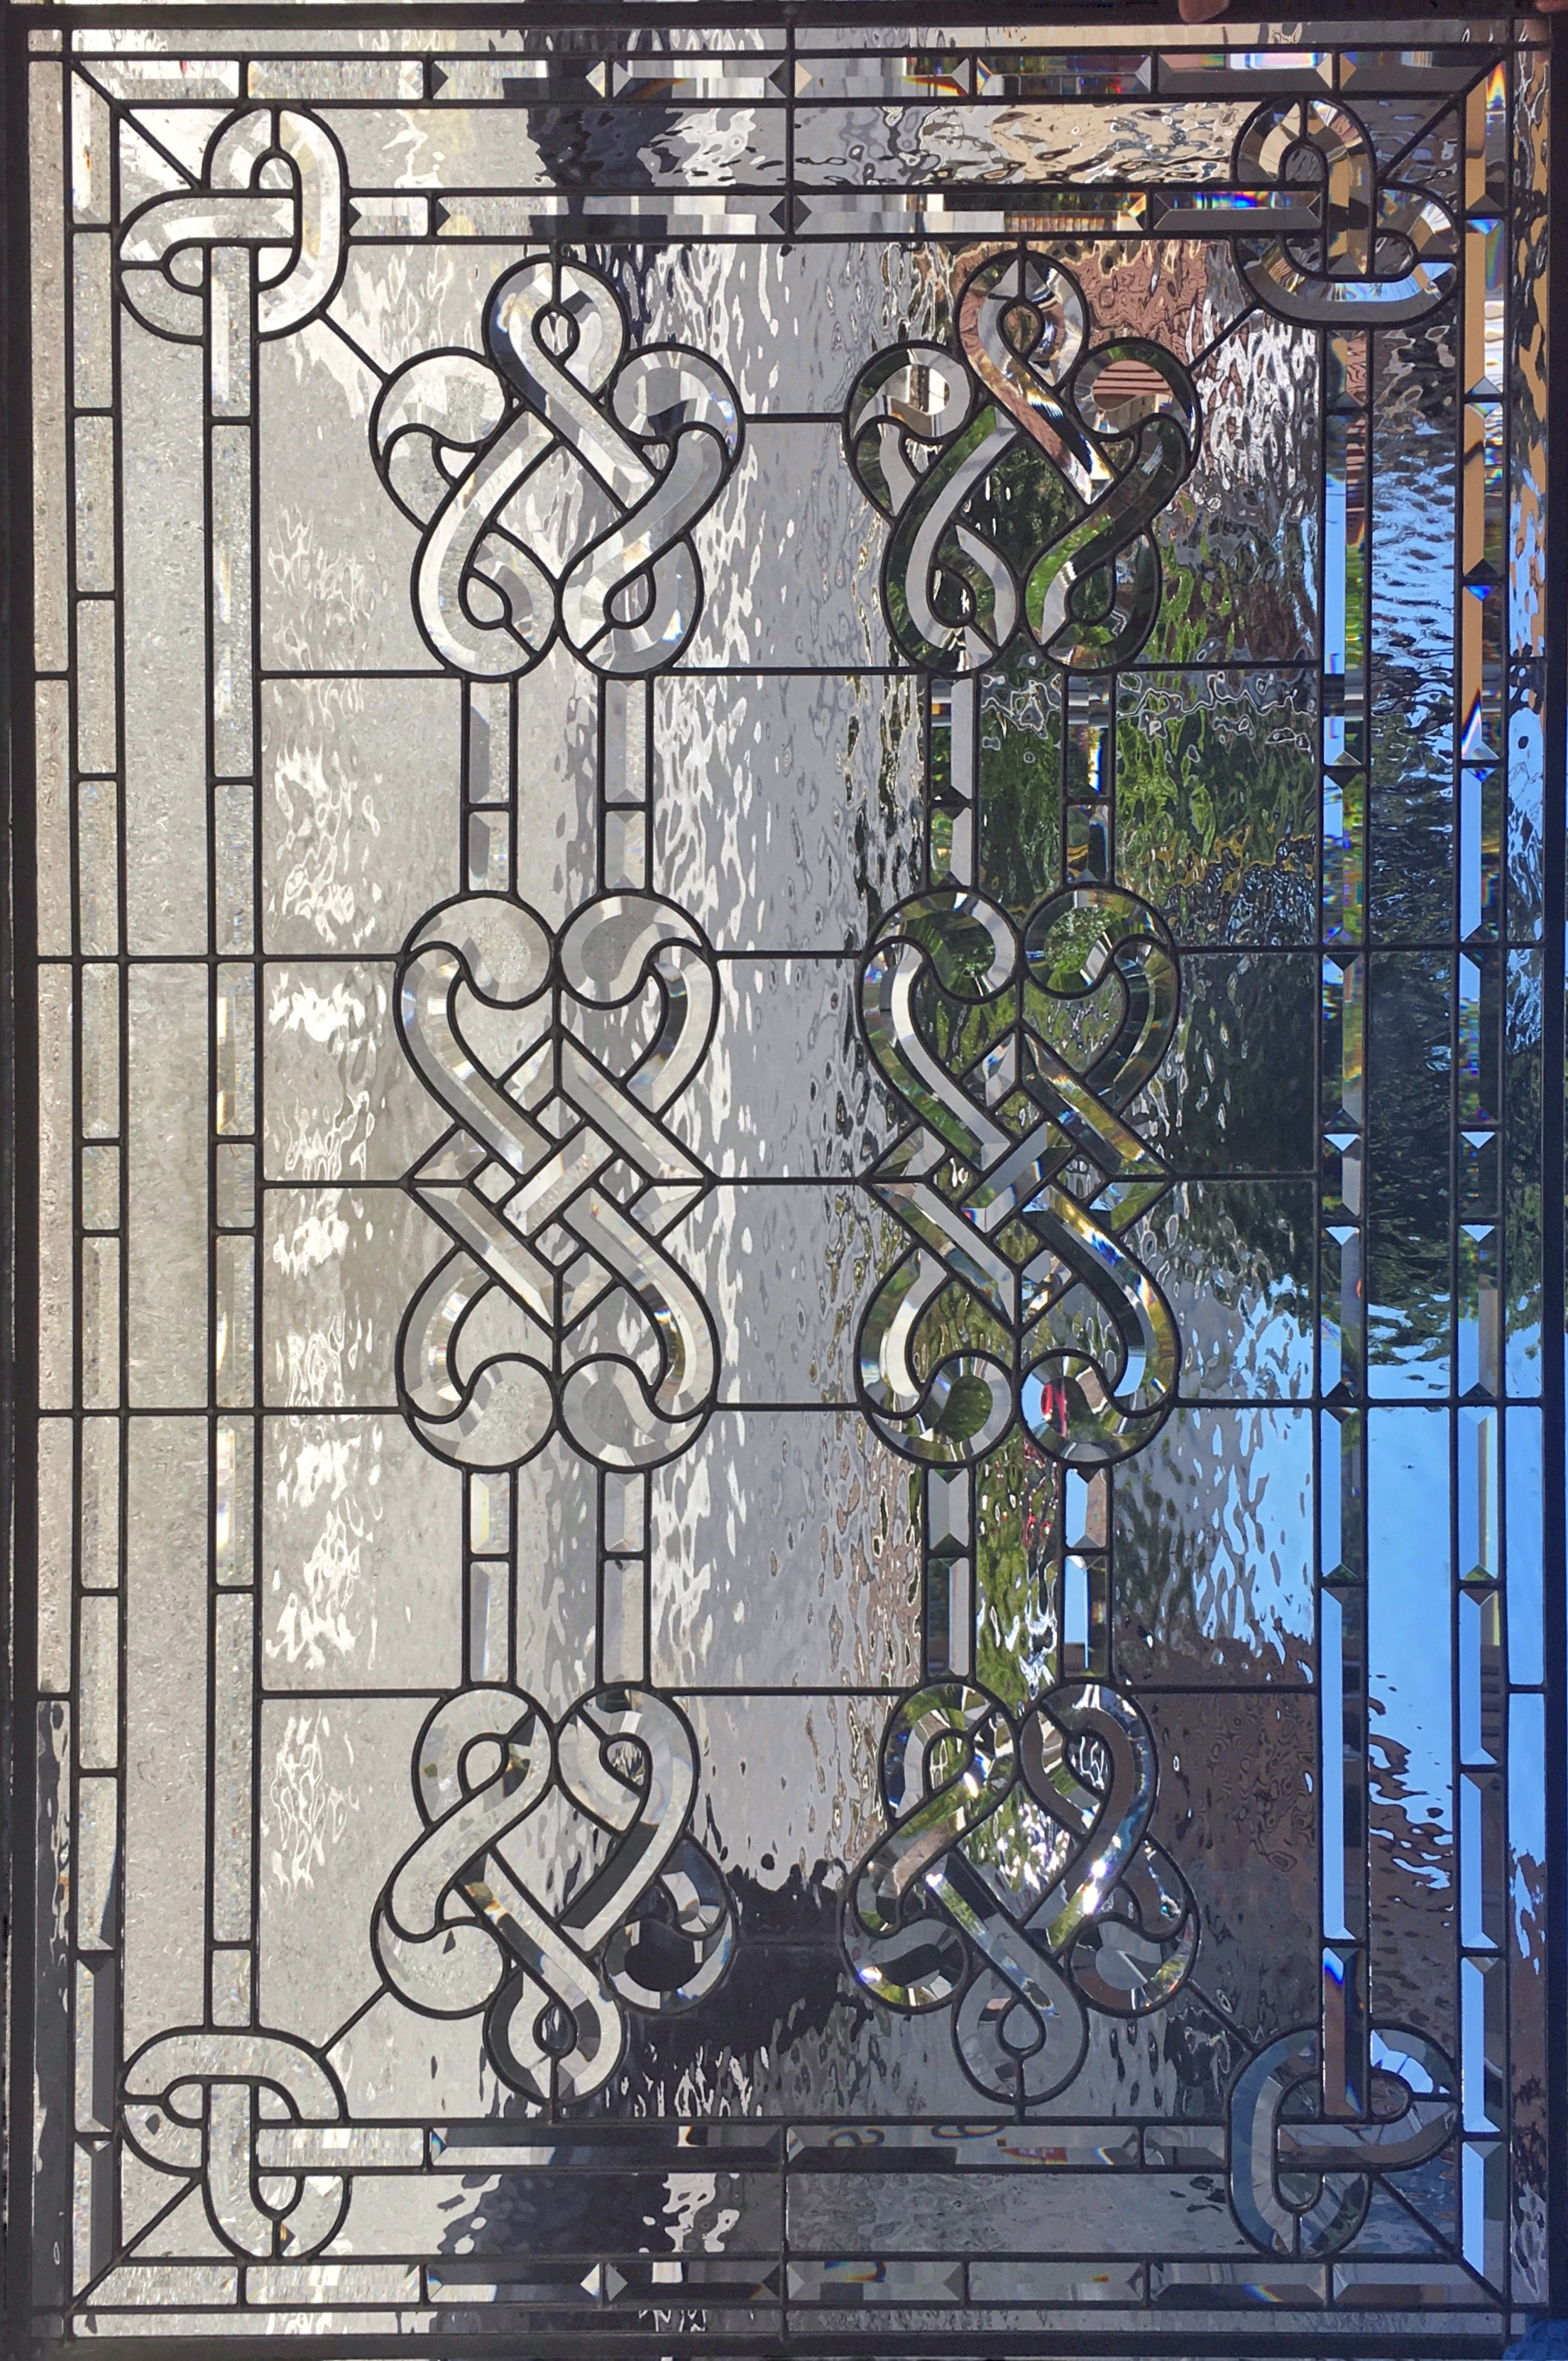 beveled celtic knot water glass classic design leaded glass stained glass legacy glass atherton san jose menlo park san francisco california.JPG